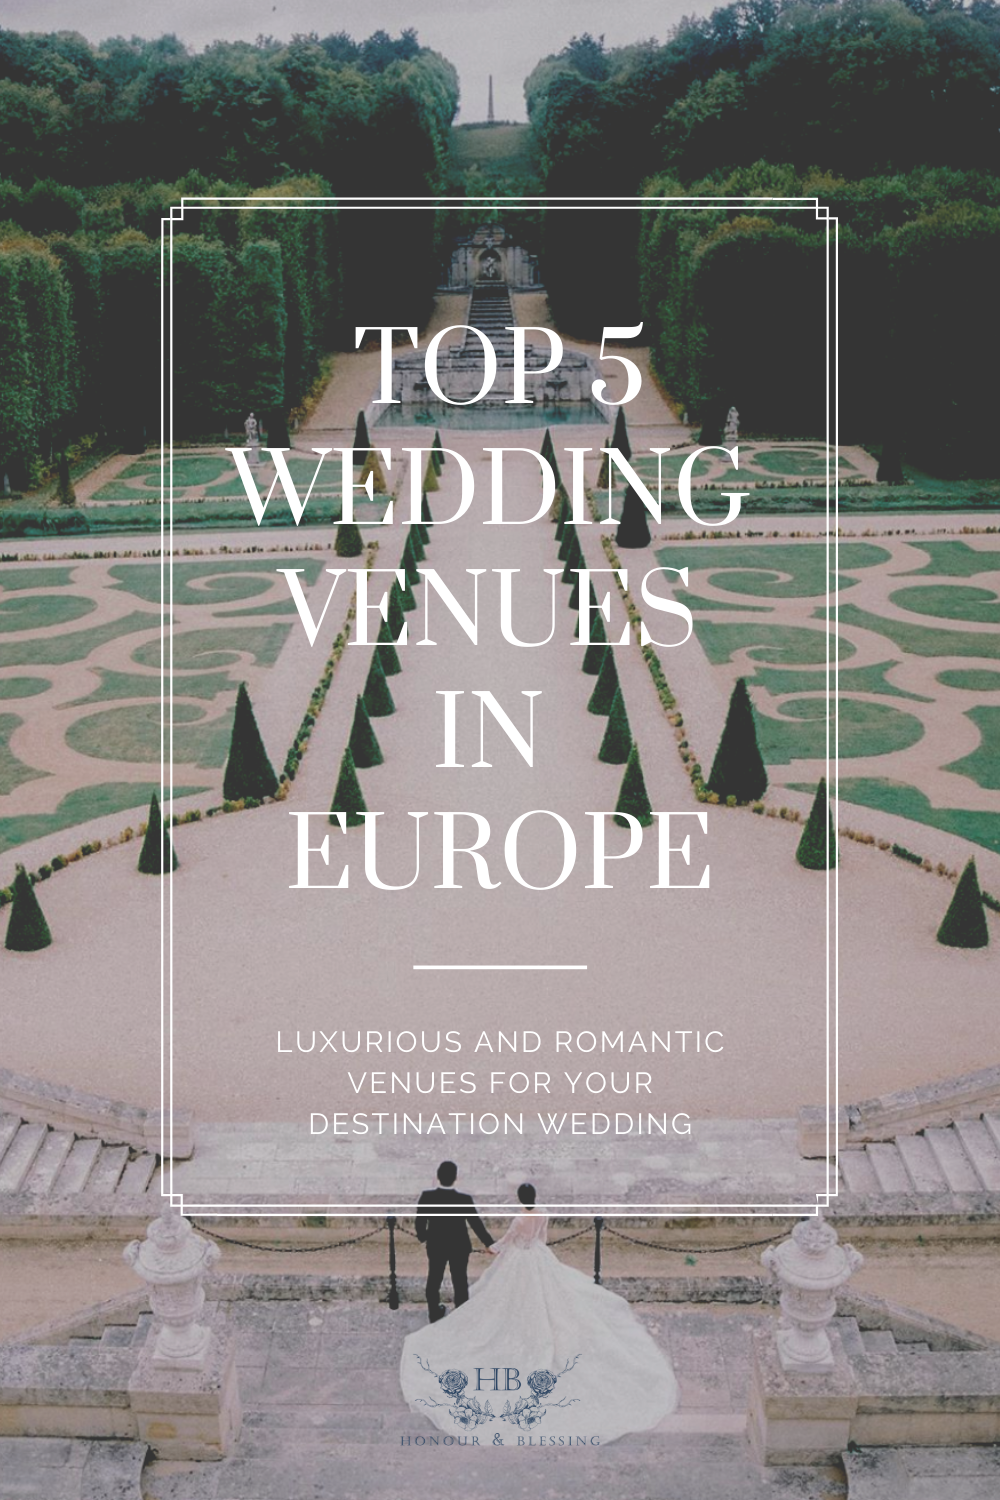 Top 5 Romantic and Luxurious Wedding Venues in Europe ...